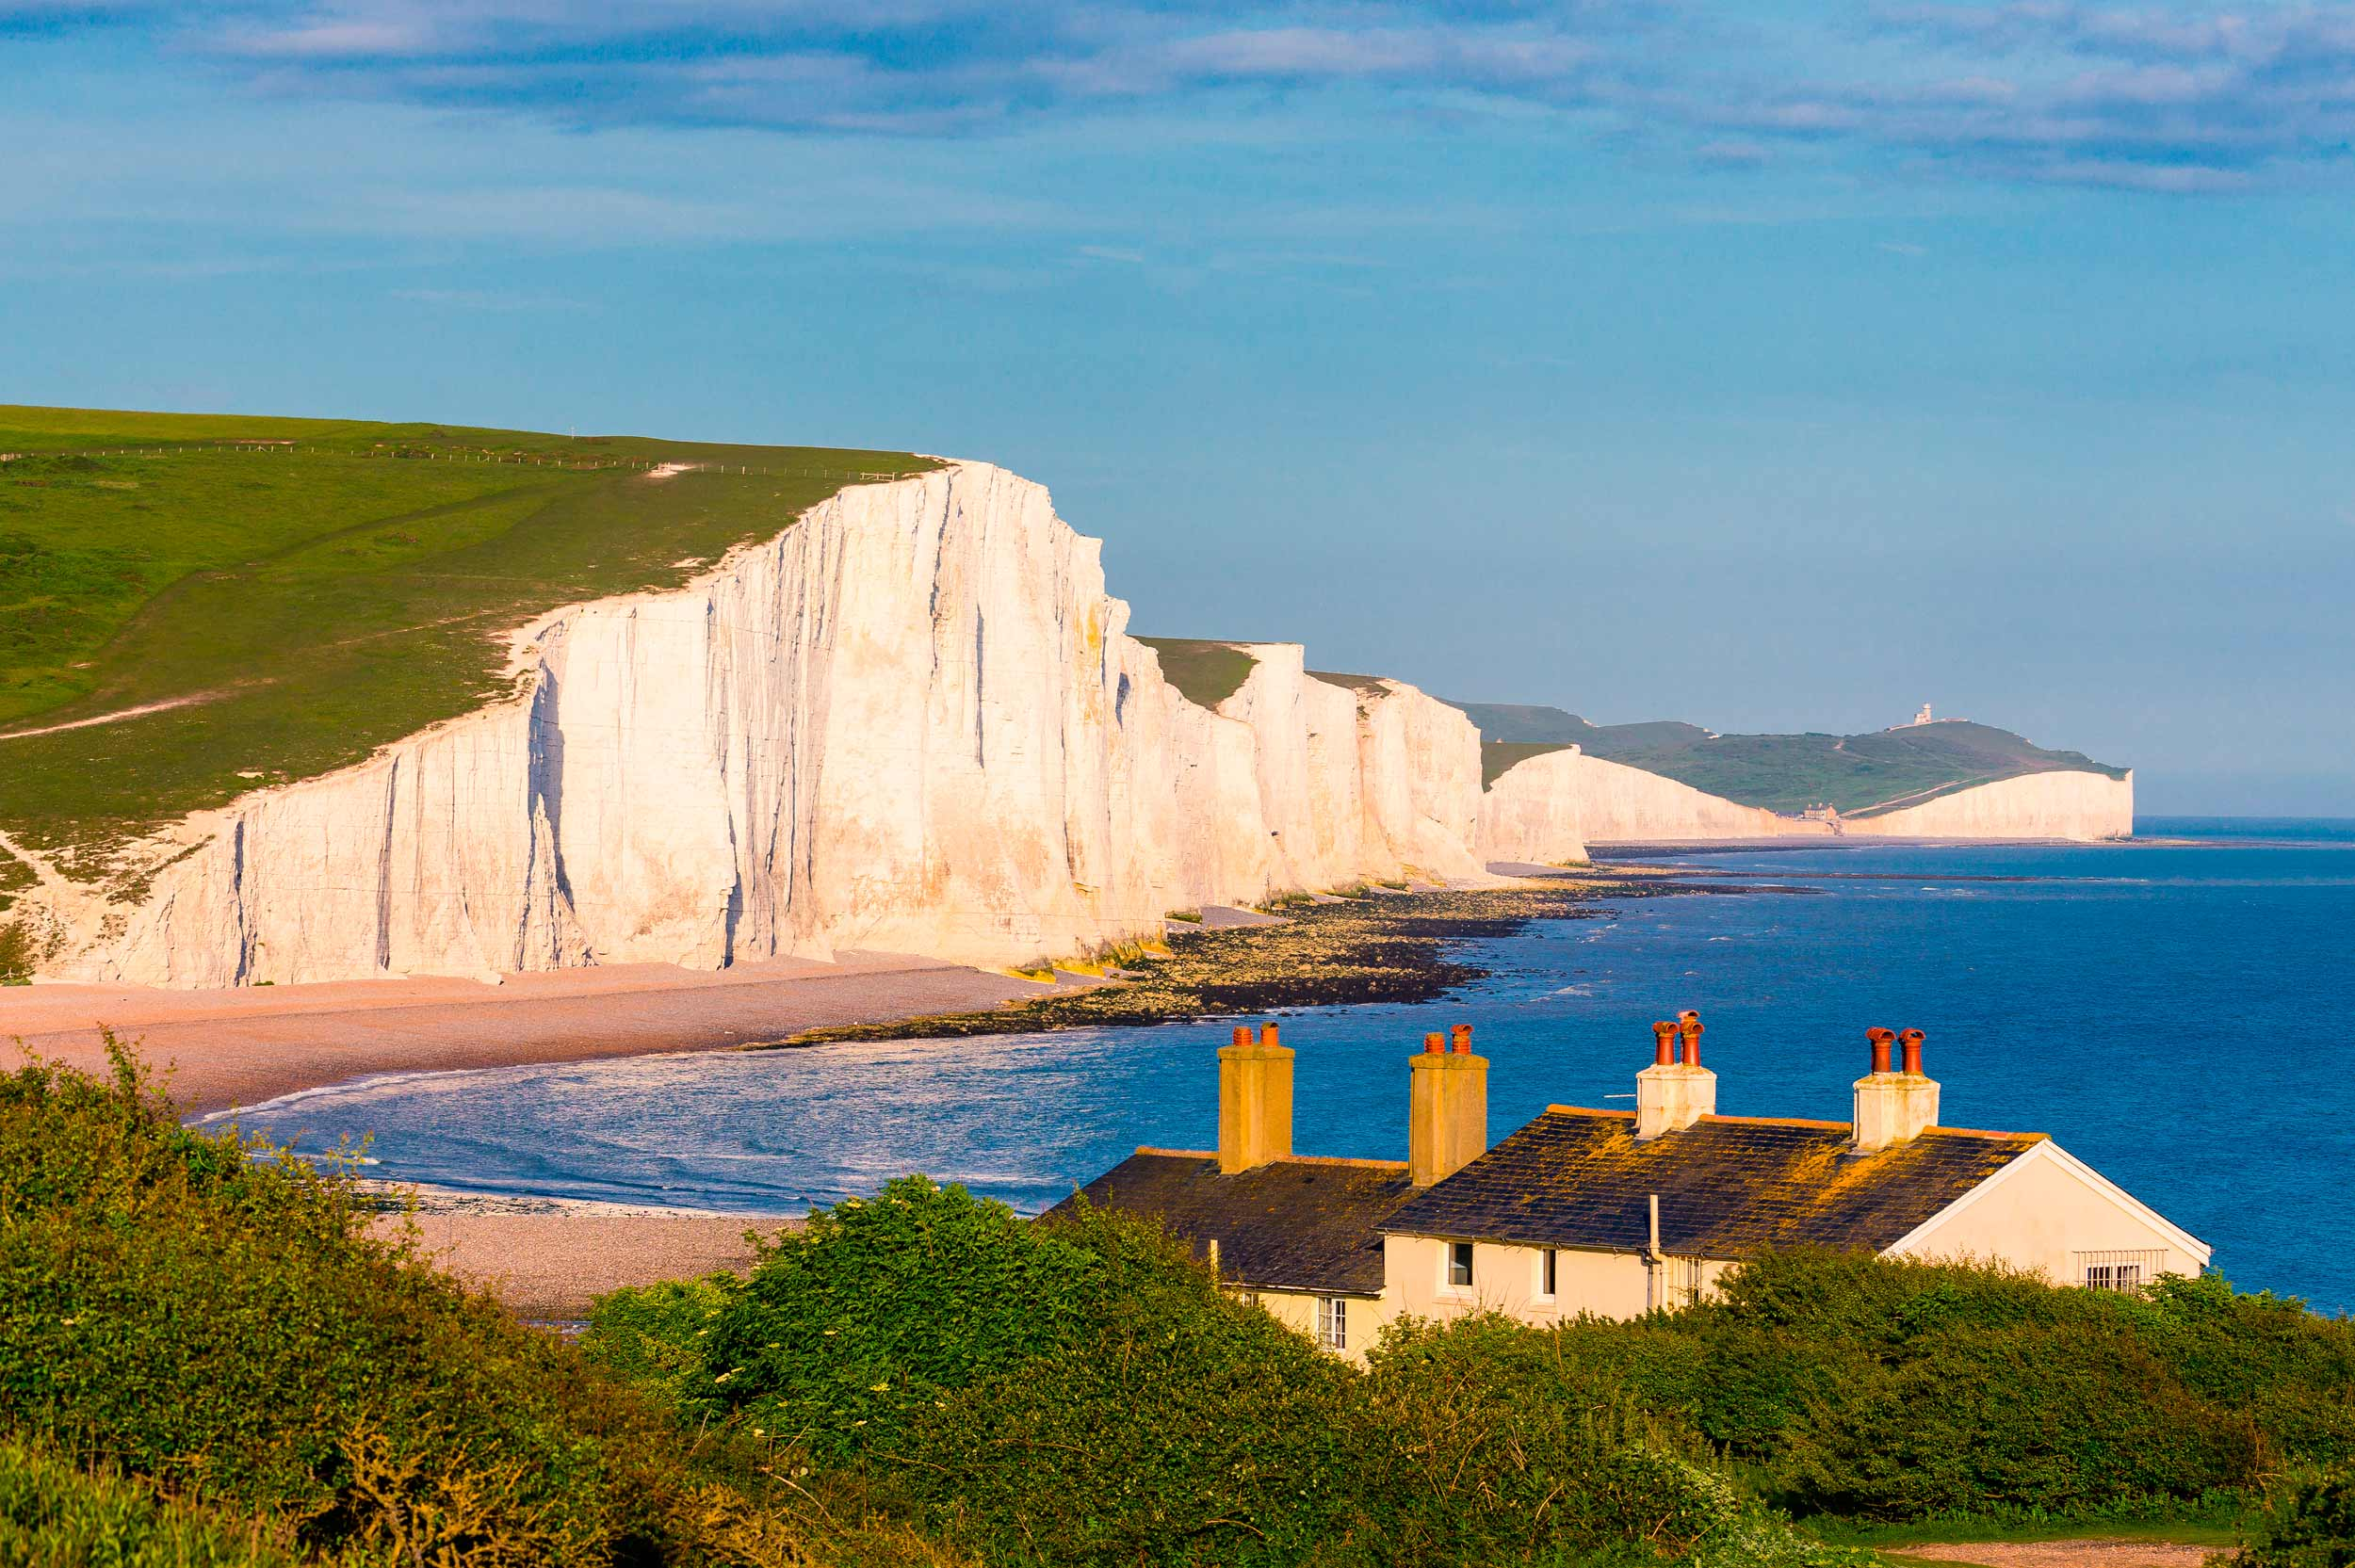 Seven Sisters from Cuckmere, in the South Downs, England  (Daniel Lange/Shutterstock)